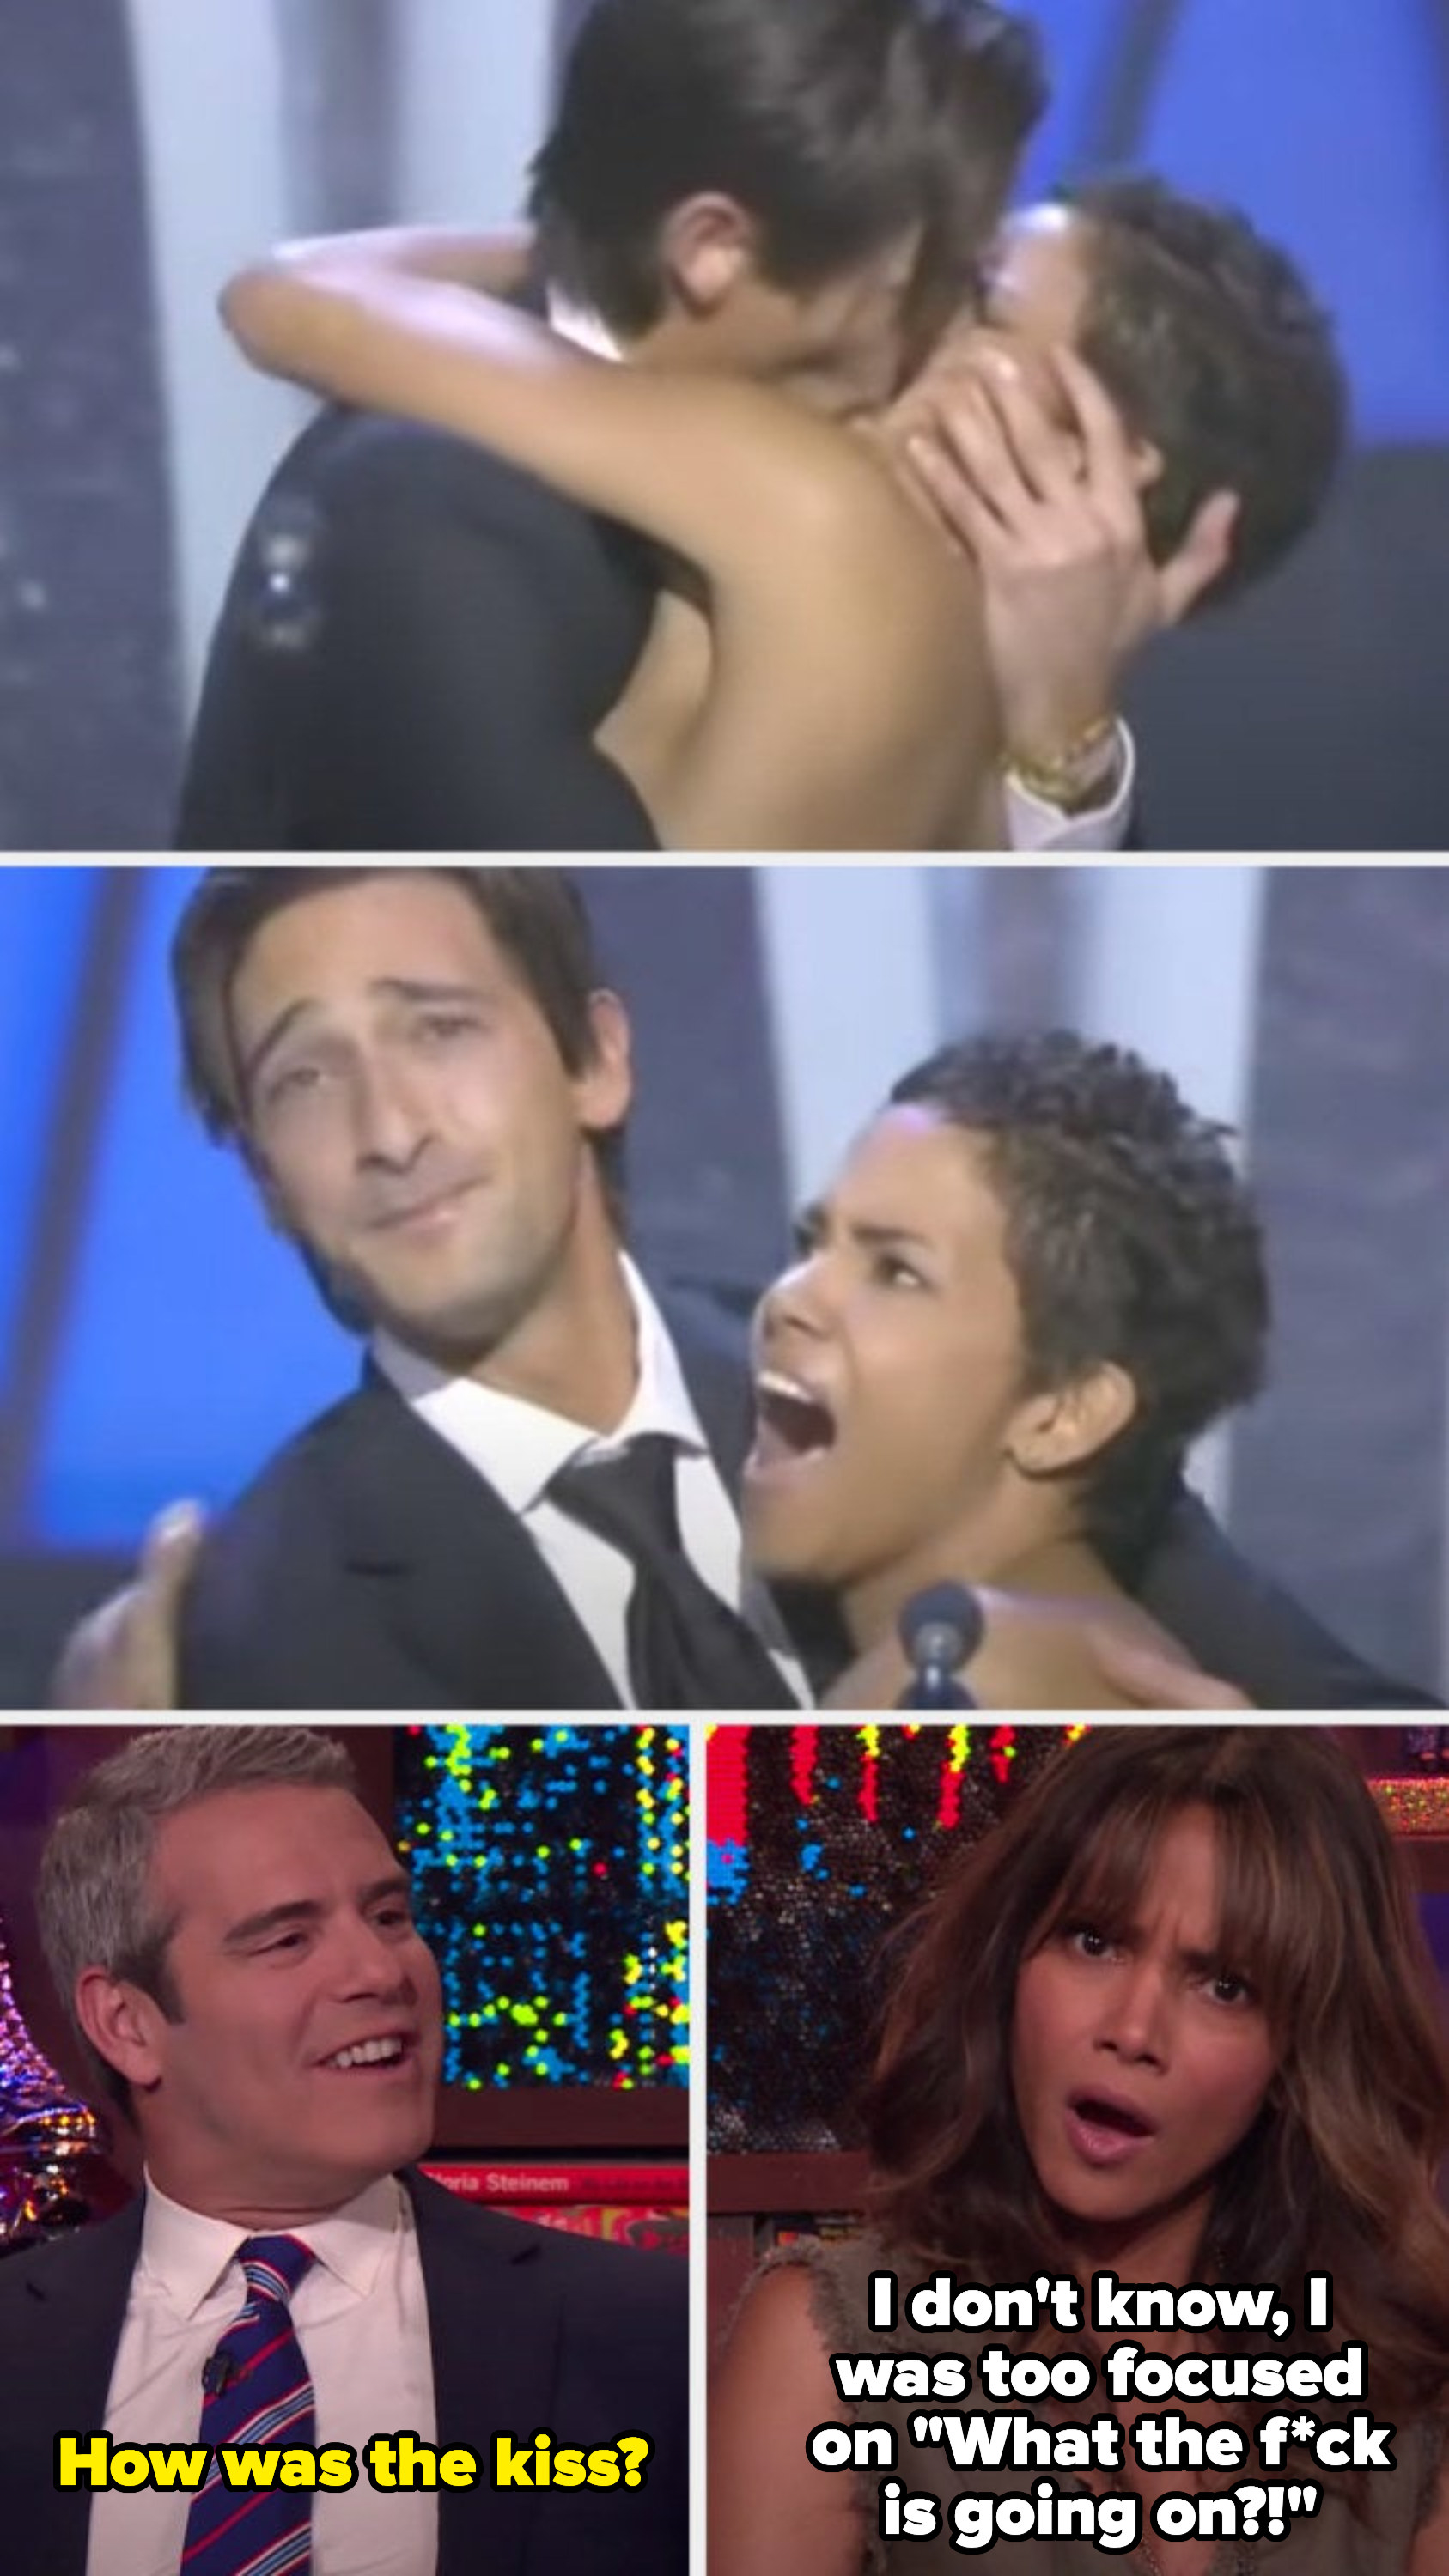 """Andy Cohen asking Halle Berry how the kiss was, and she responded by saying, """"I don't know, I was too focused on 'What the f*ck is going on?!'"""""""